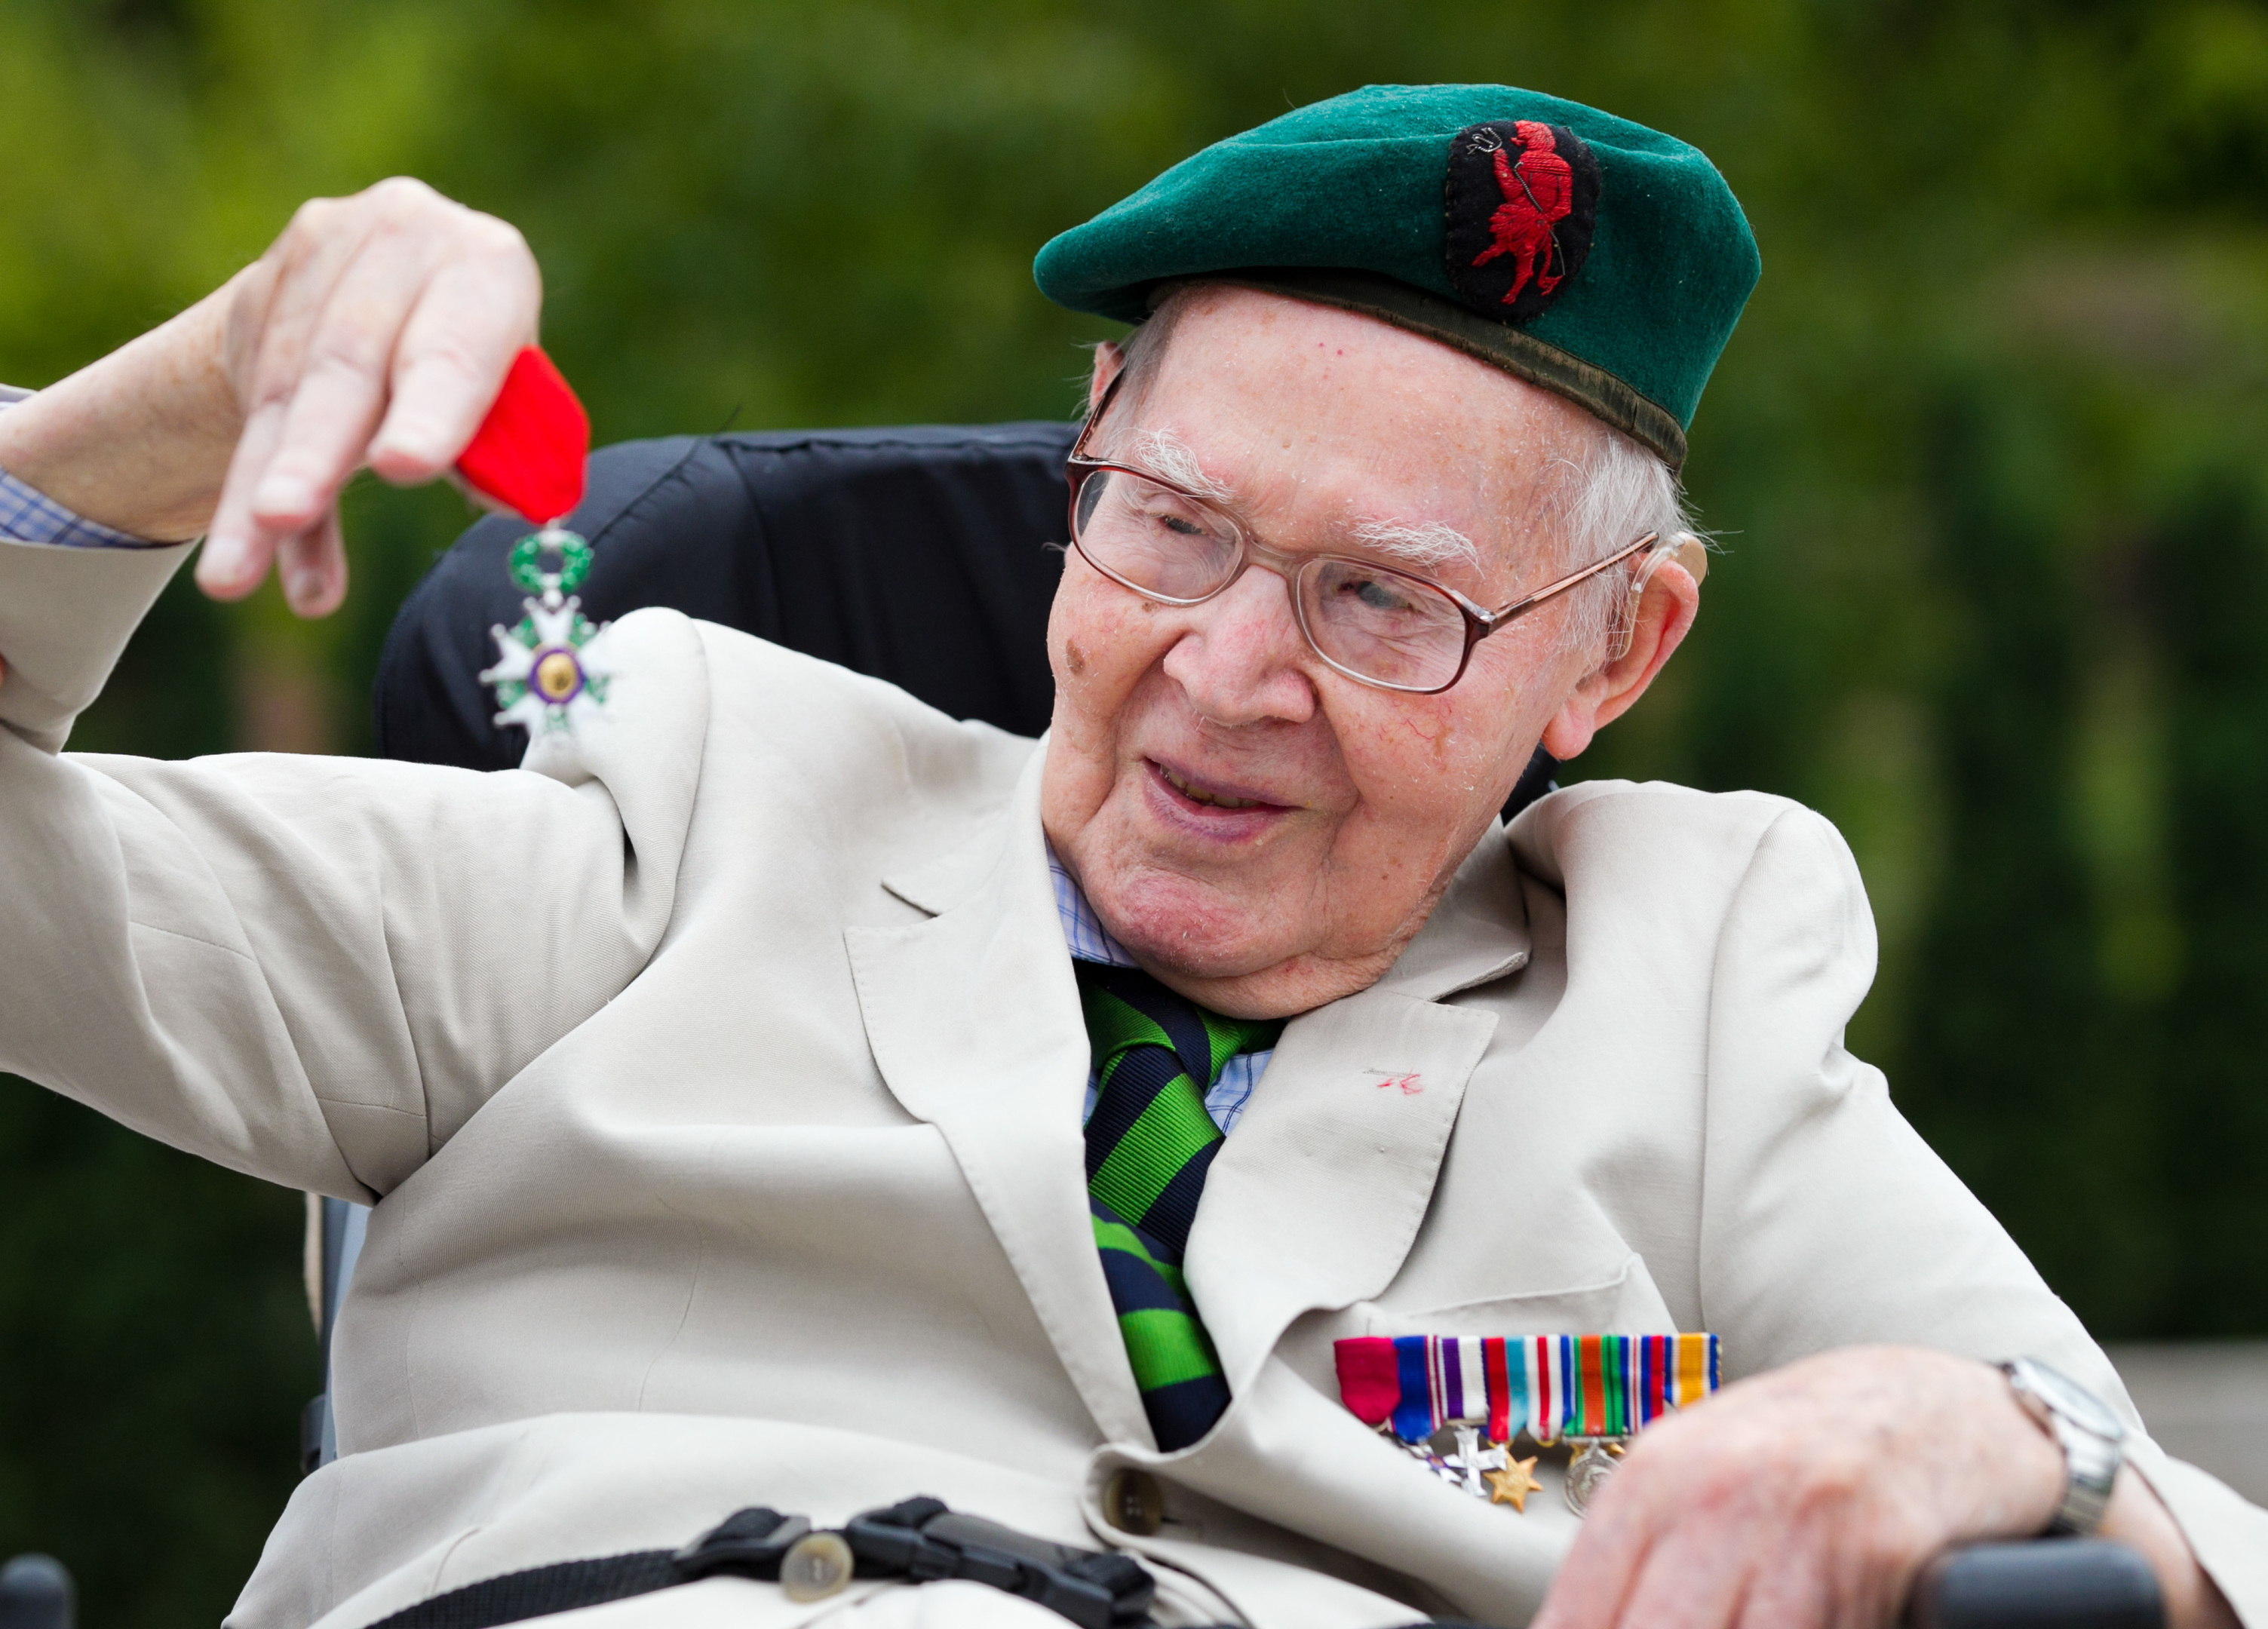 WWII veteran Angus Mitchell being awarded the Légion d'Honneur (Andrew Cawley/DC Thomson)